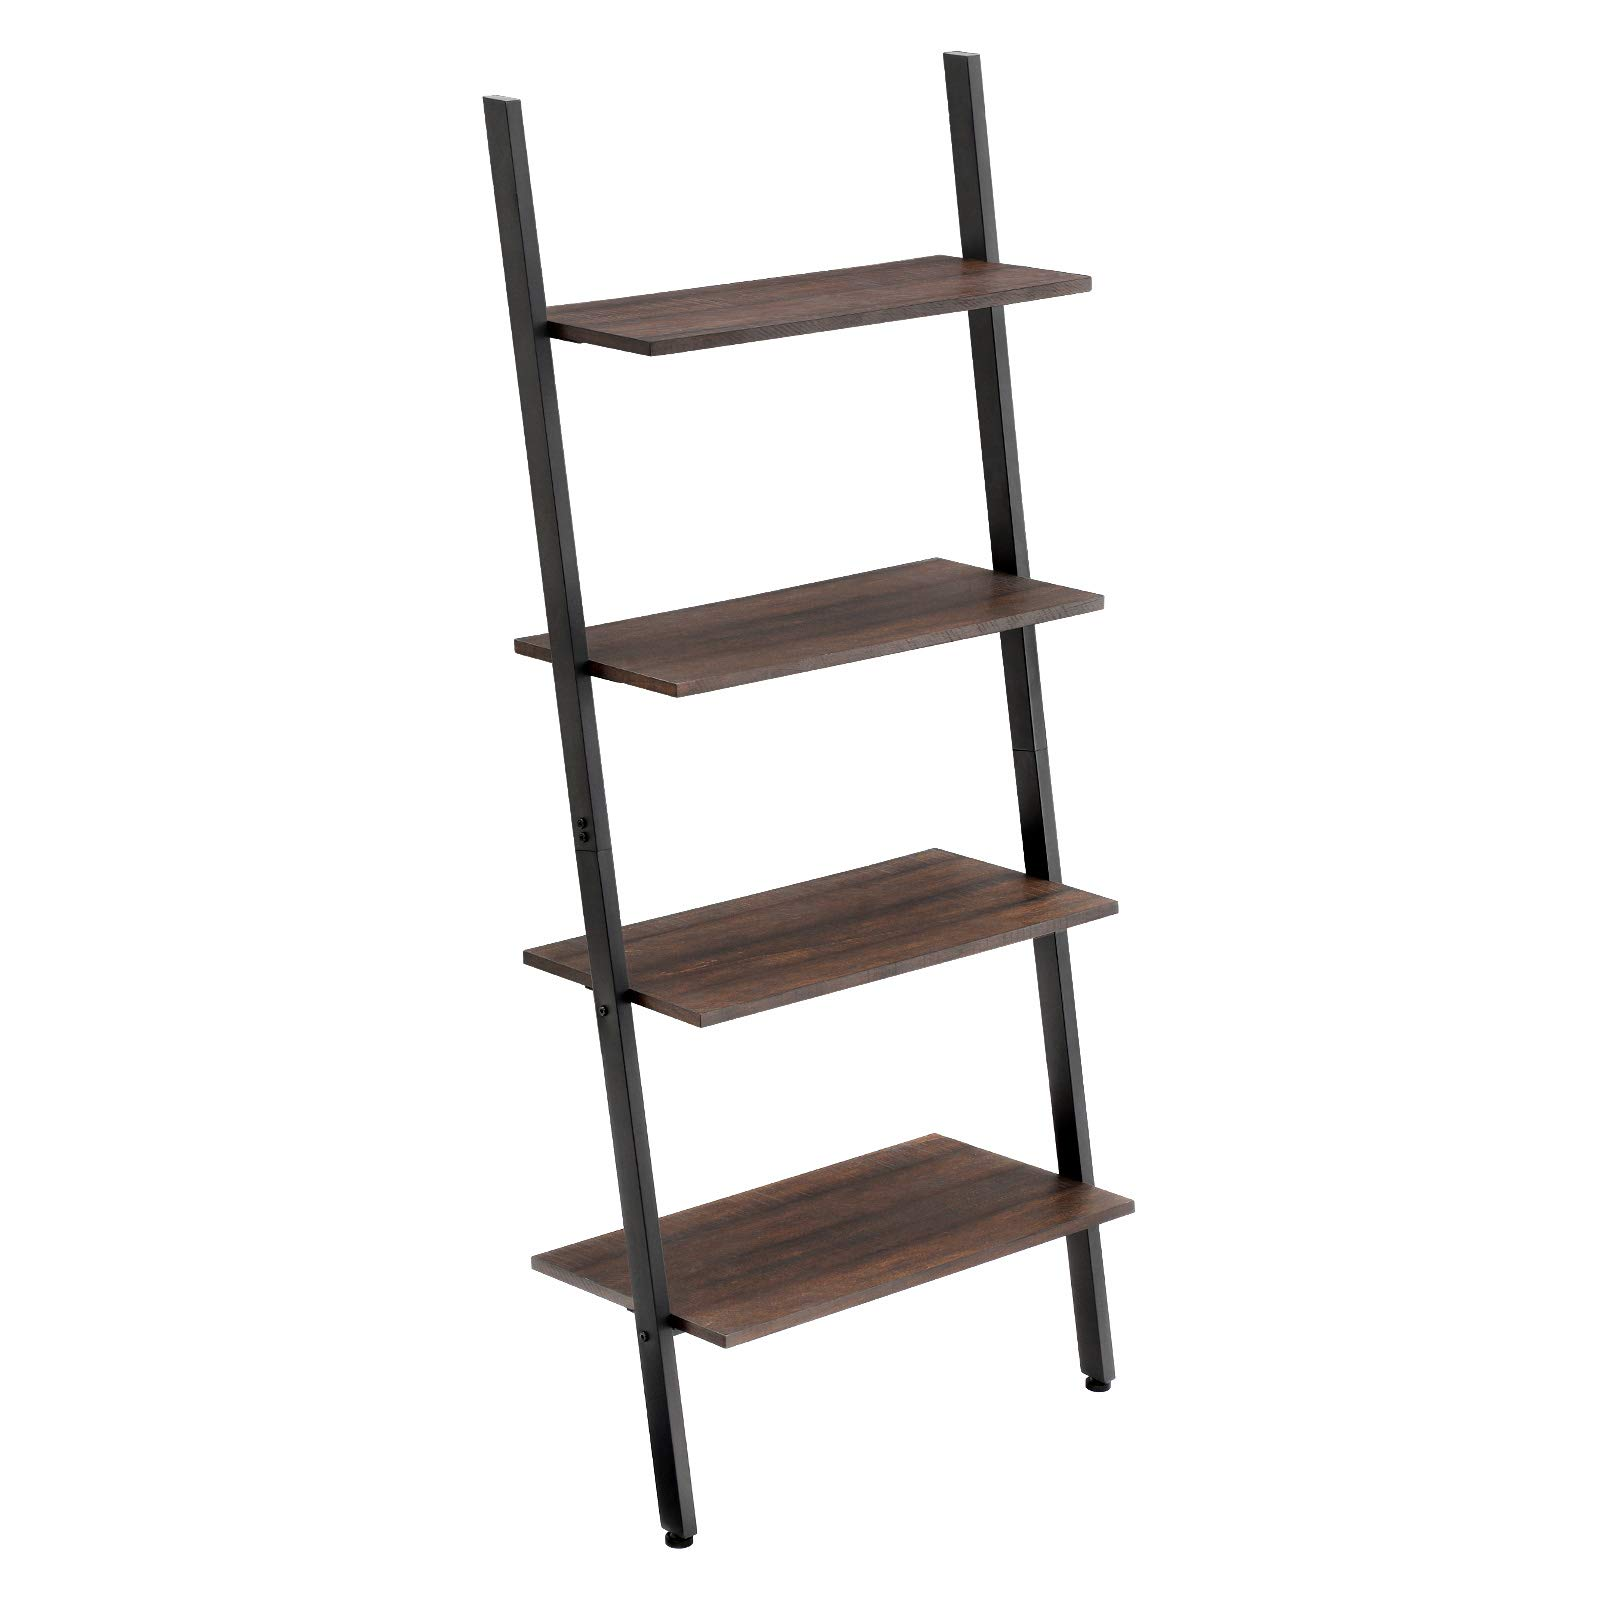 VASAGLE Industrial Ladder, 4-Tier Bookshelf, Shelf for Living Room, Kitchen, Office, Iron, Stable, Sloping, Leaning Against The Wall, Rustic Dark Brown ULLS43BF